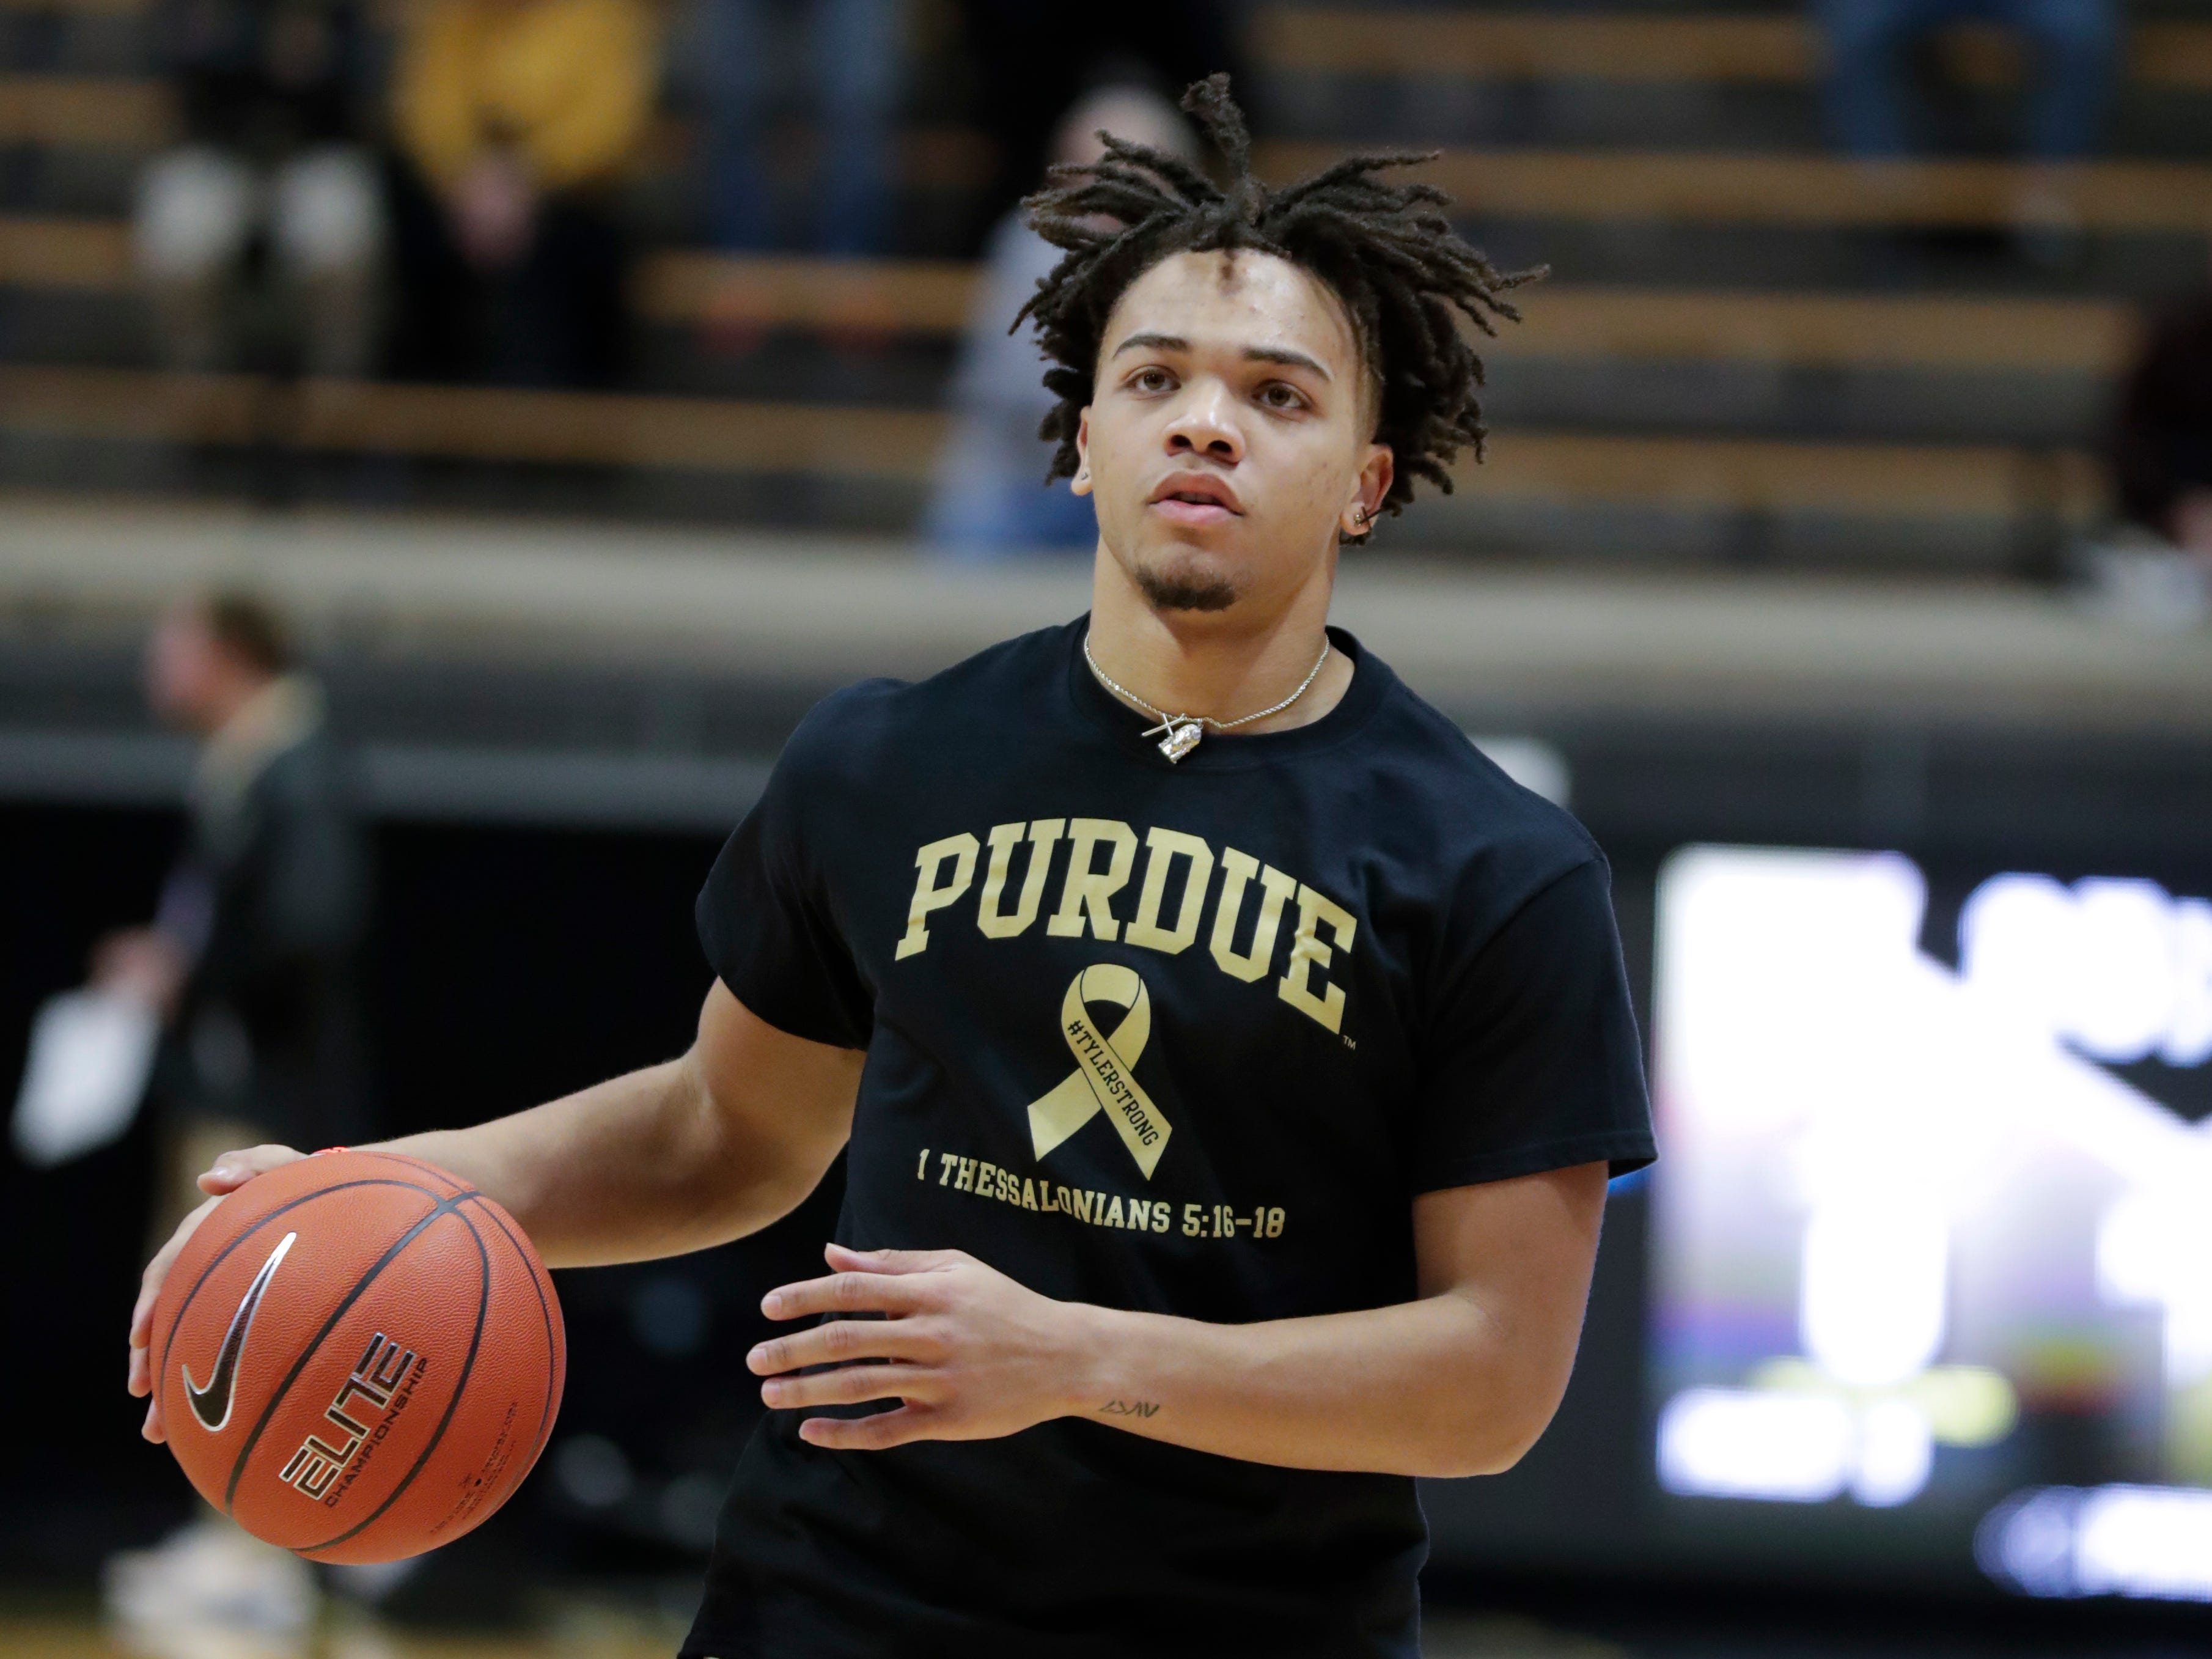 Purdue guard Carsen Edwards (3) wears a shirt honoring Tyler Trent before an NCAA college basketball game against Iowa in West Lafayette, Ind., Thursday, Jan. 3, 2019. Both Purdue and Iowa will pay their respects to late Boilermakers fan Tyler Trent on by wearing #TylerStrong T-shirts in his honor. Trent, a superfan who inspired people across the globe during his hard-fought battle with cancer, died this week. He was 20.